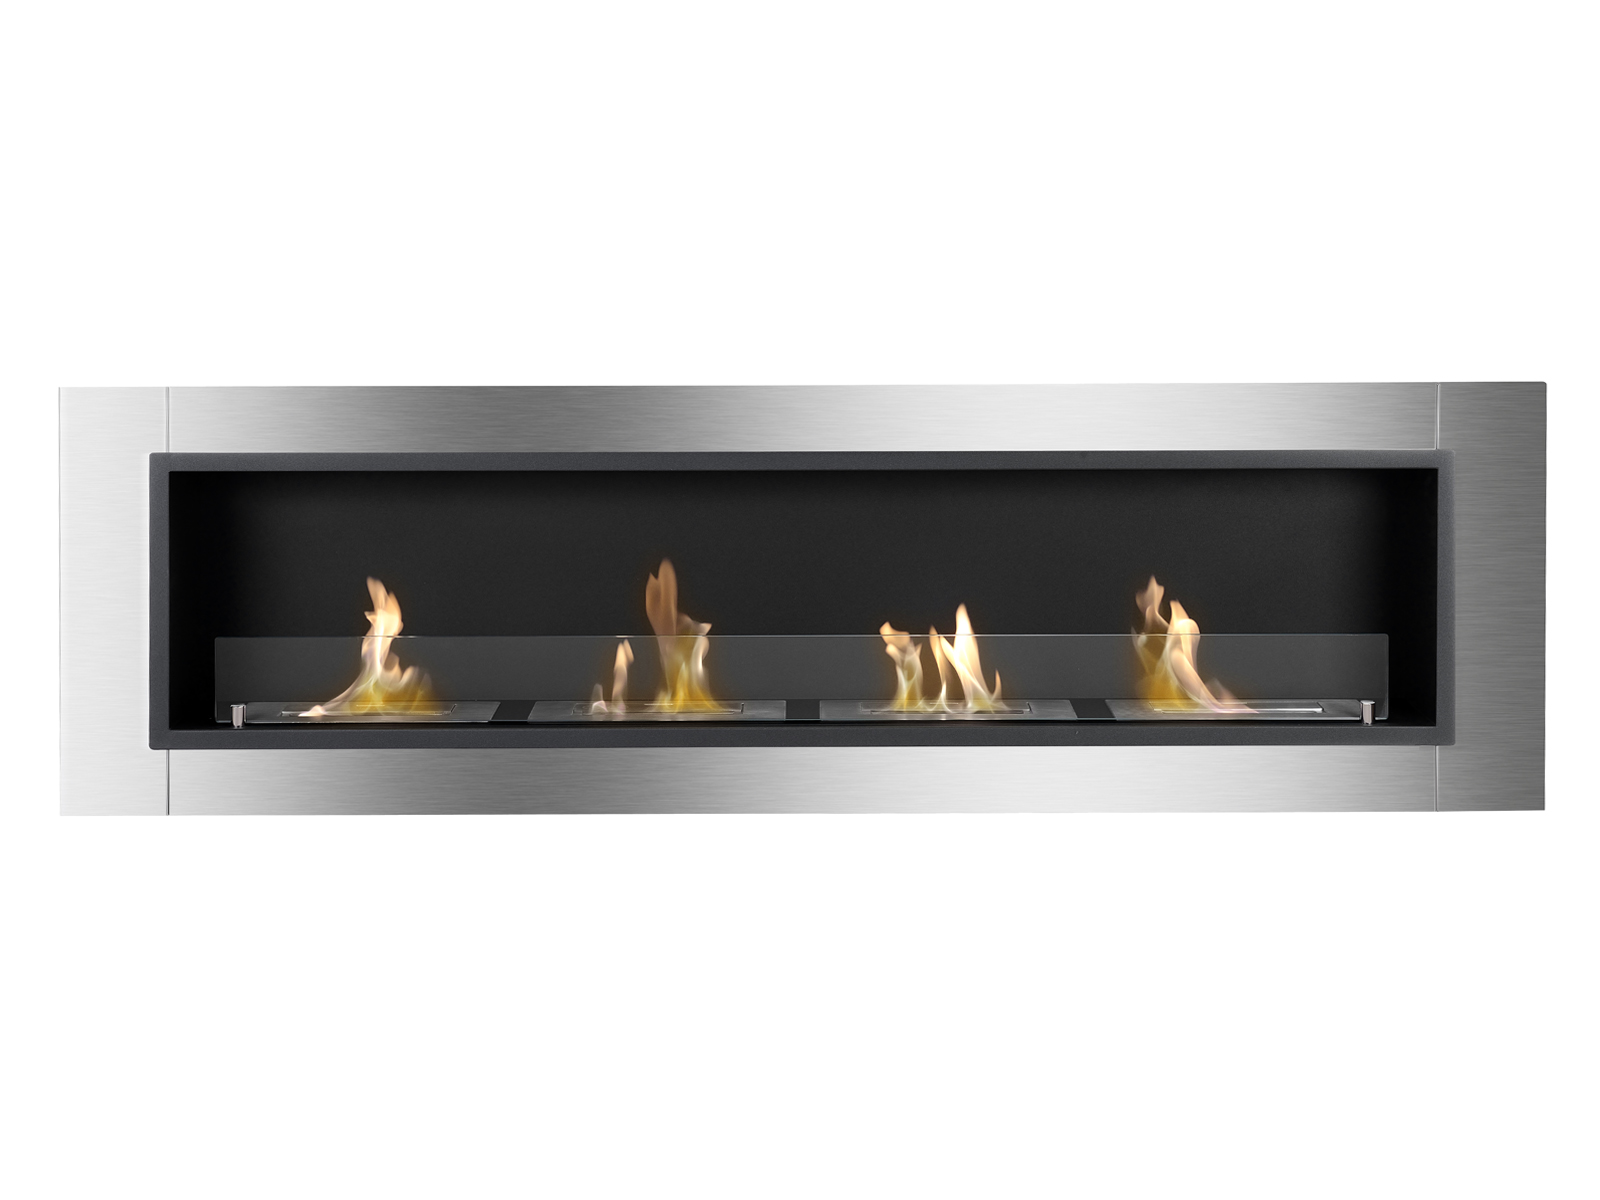 Accalia Ventless Recessed Ethanol Fireplace with Flame Front View